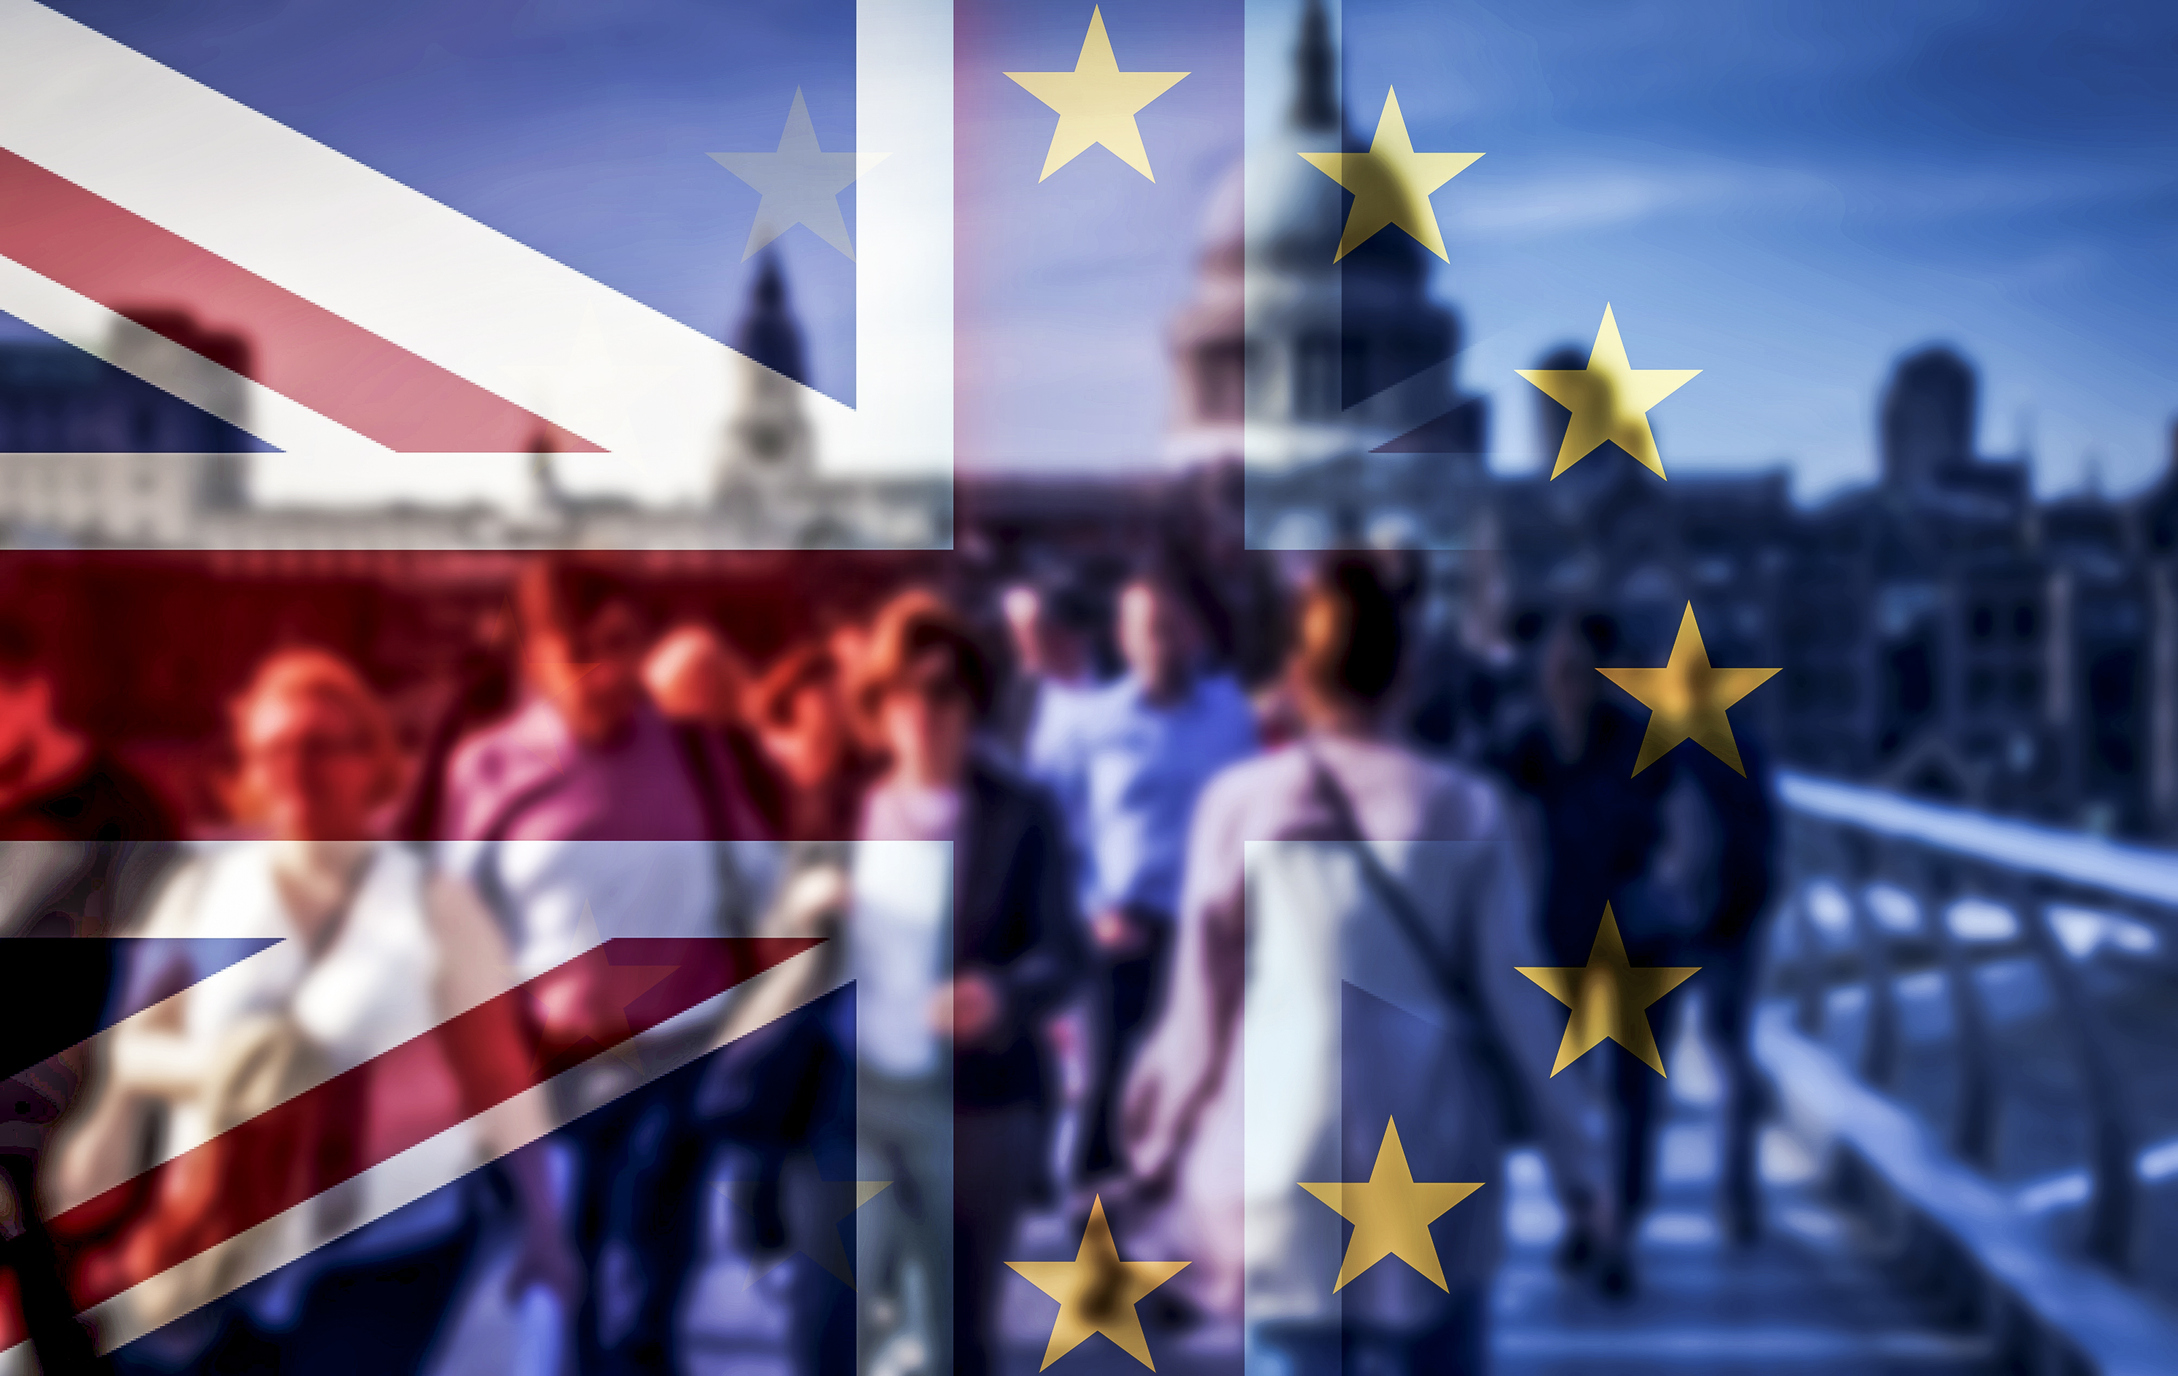 brexit concept - double exposure of flags and people walking on Millenium Bridge